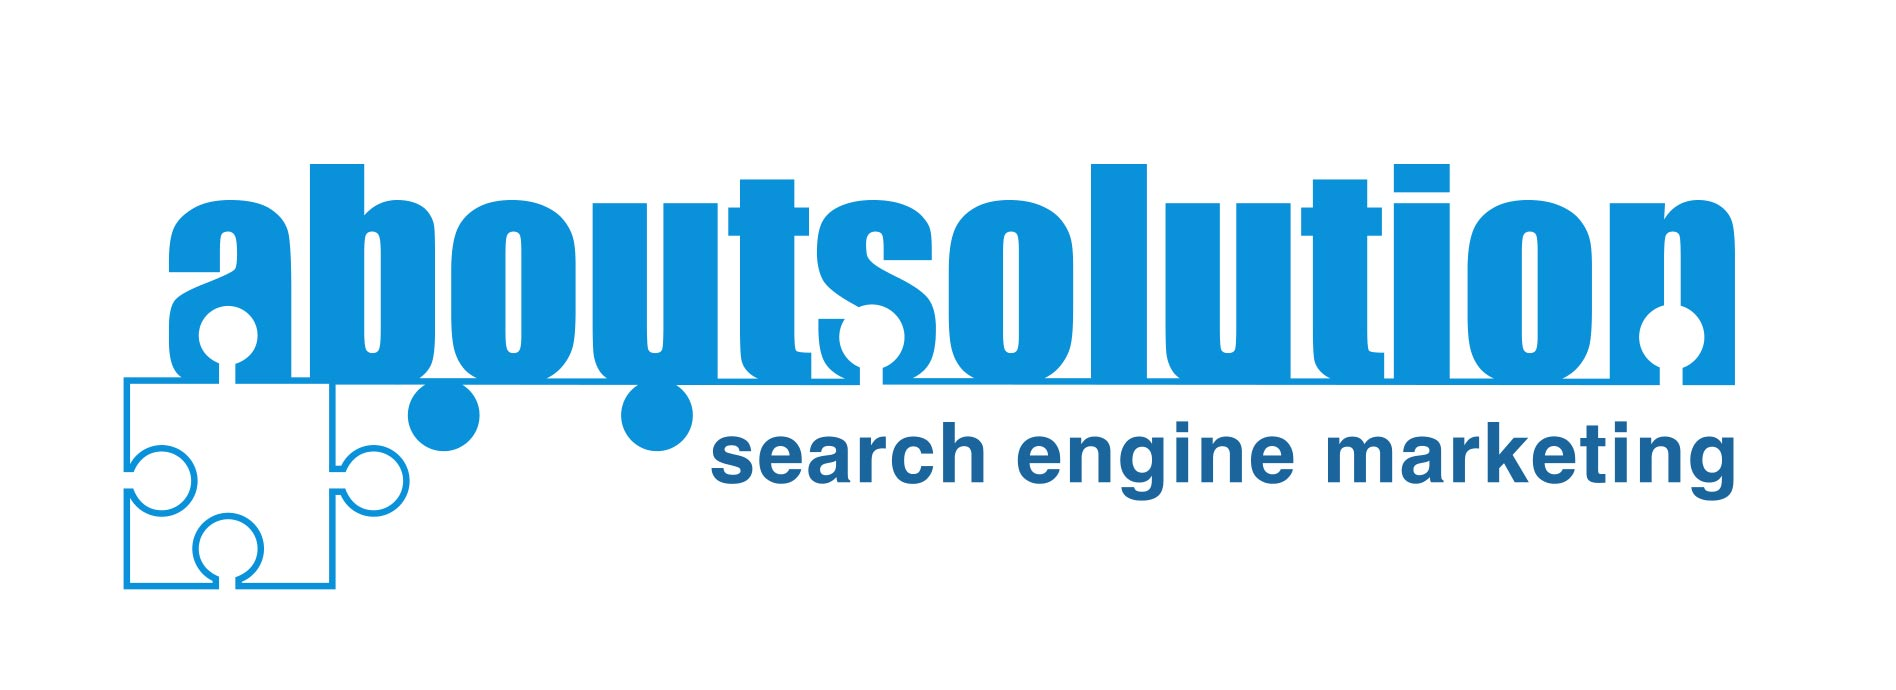 About Solution -Search Engine Marketing